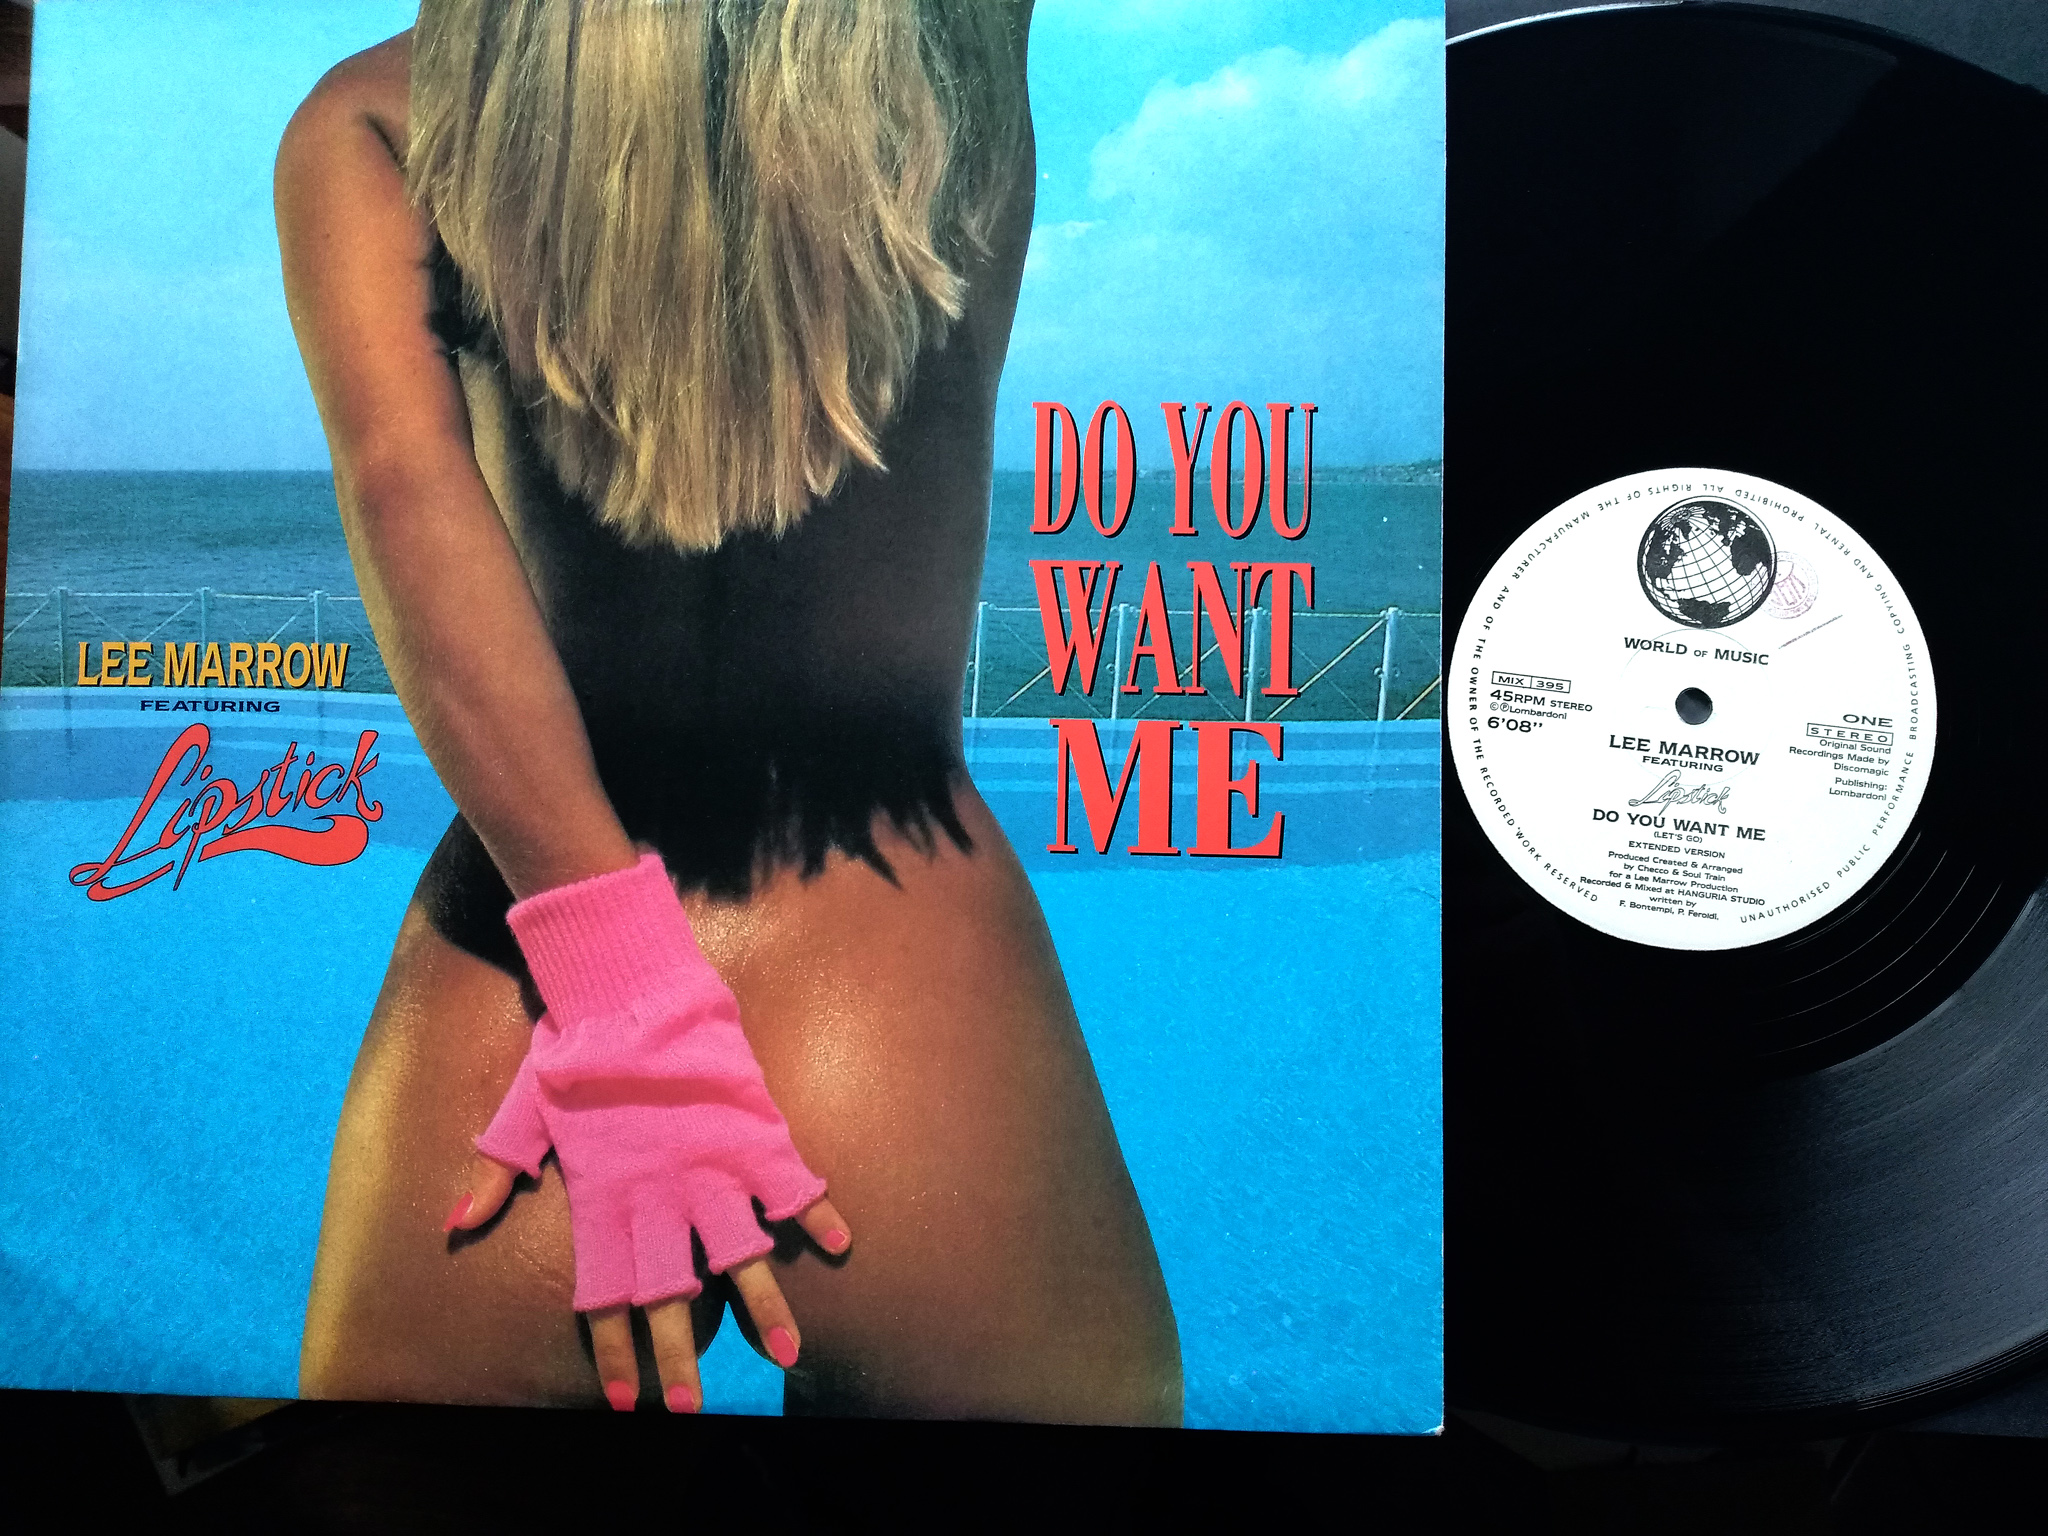 Lee Marrow - Do You Want Me